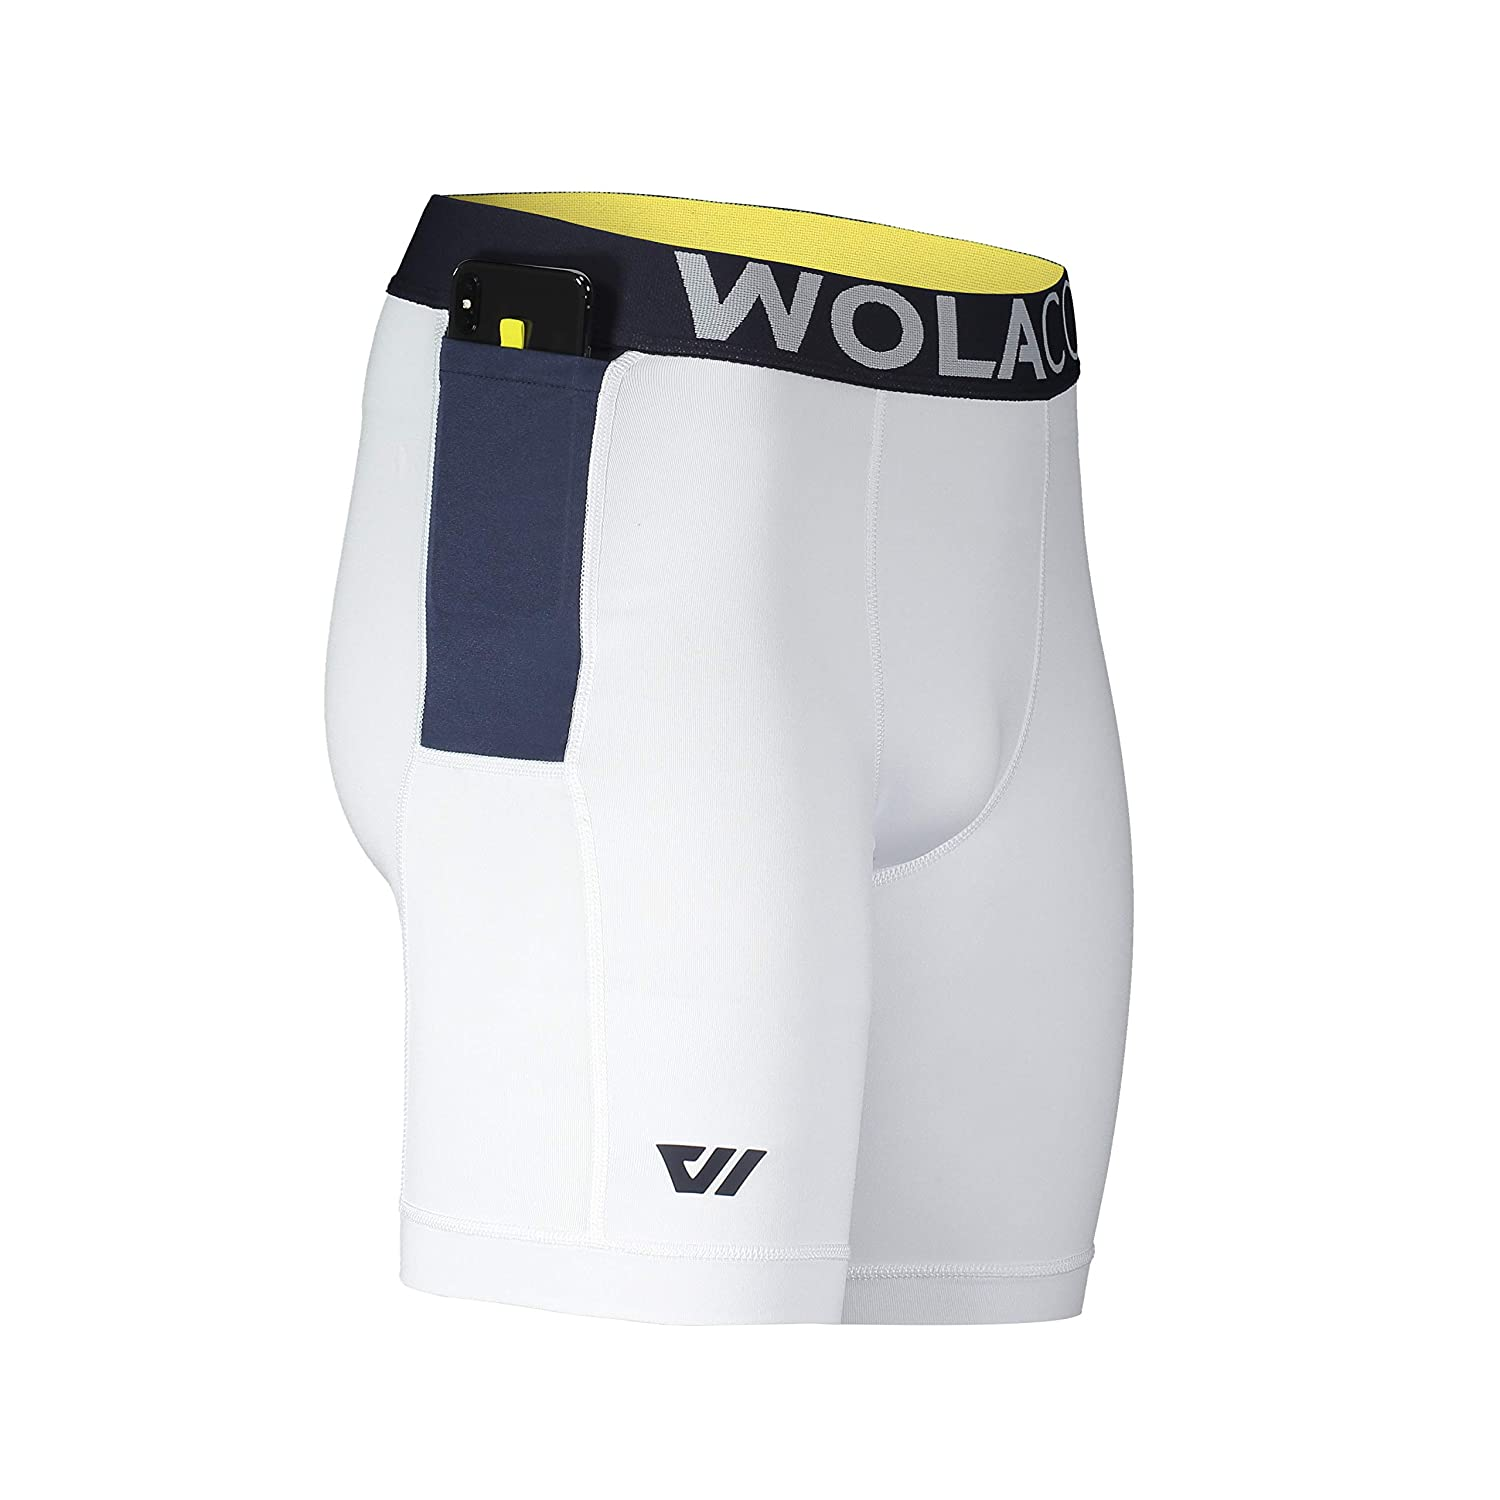 West Side White X-Large WOLACO North Moore Compression Shorts - 9  Inseam - Compact Sports Activewear - Made in America